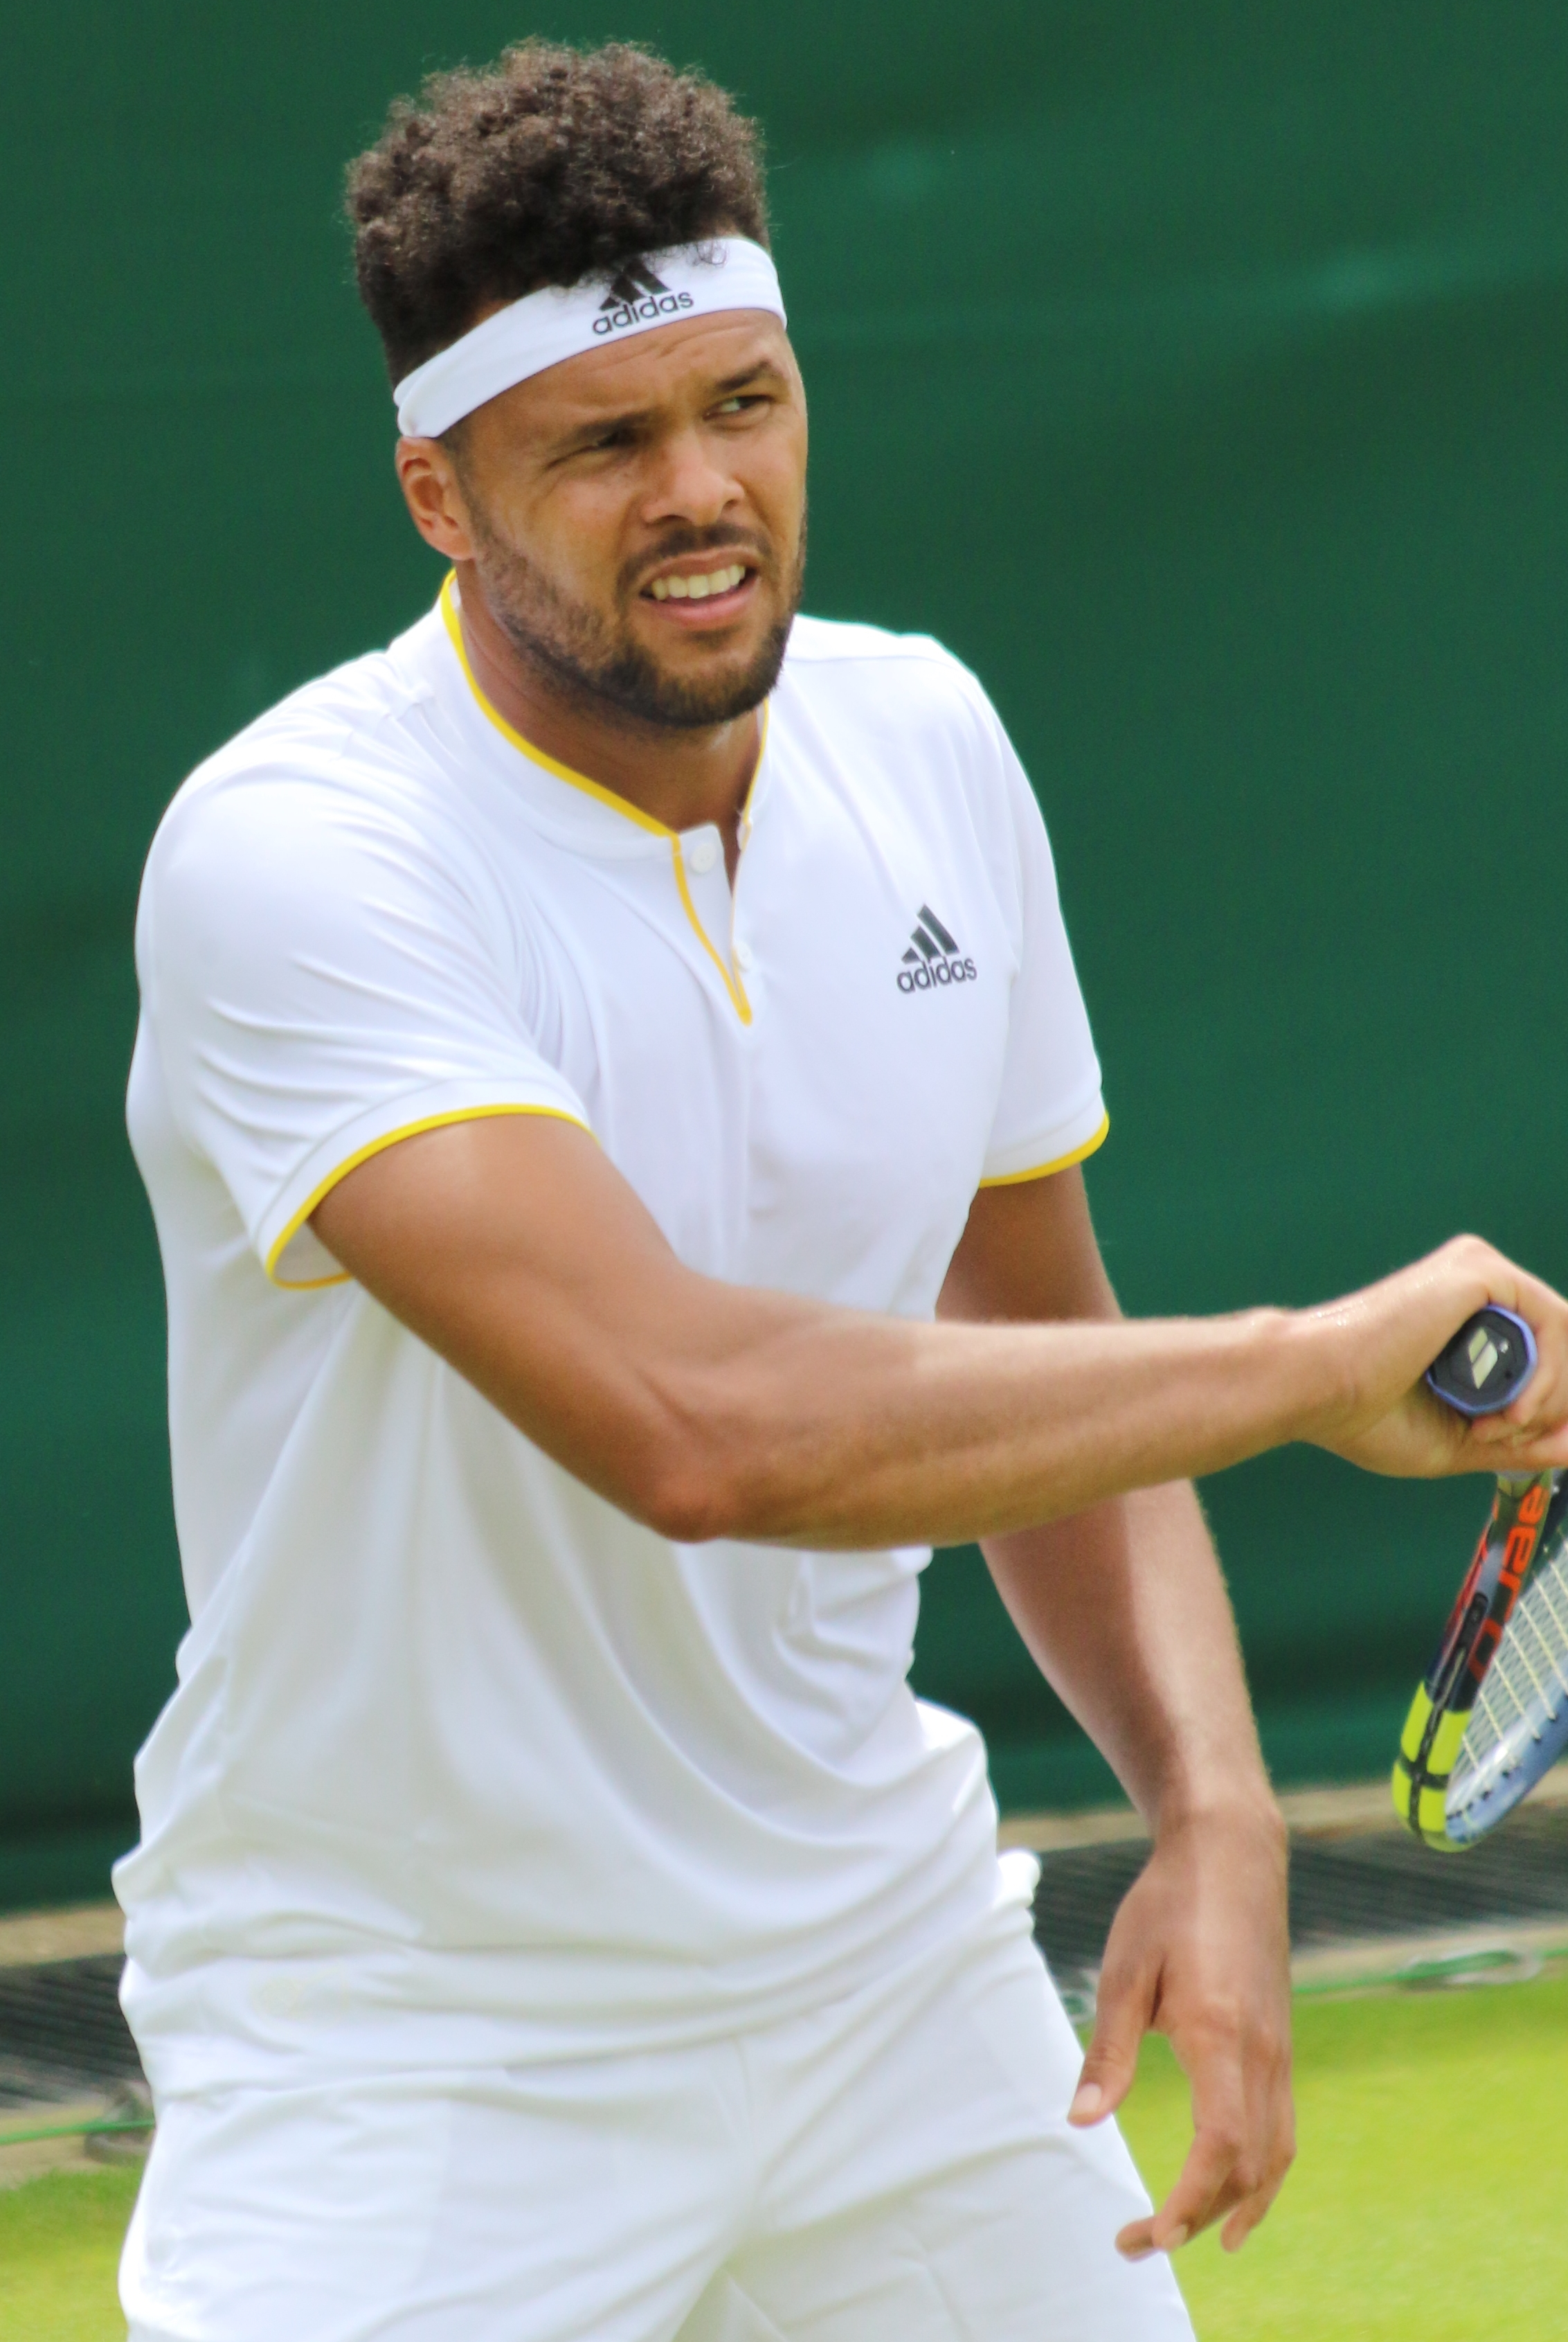 The 35-year old son of father Didier Tsonga and mother Évelyne Tsonga Jo-Wilfried Tsonga in 2020 photo. Jo-Wilfried Tsonga earned a  million dollar salary - leaving the net worth at 10 million in 2020